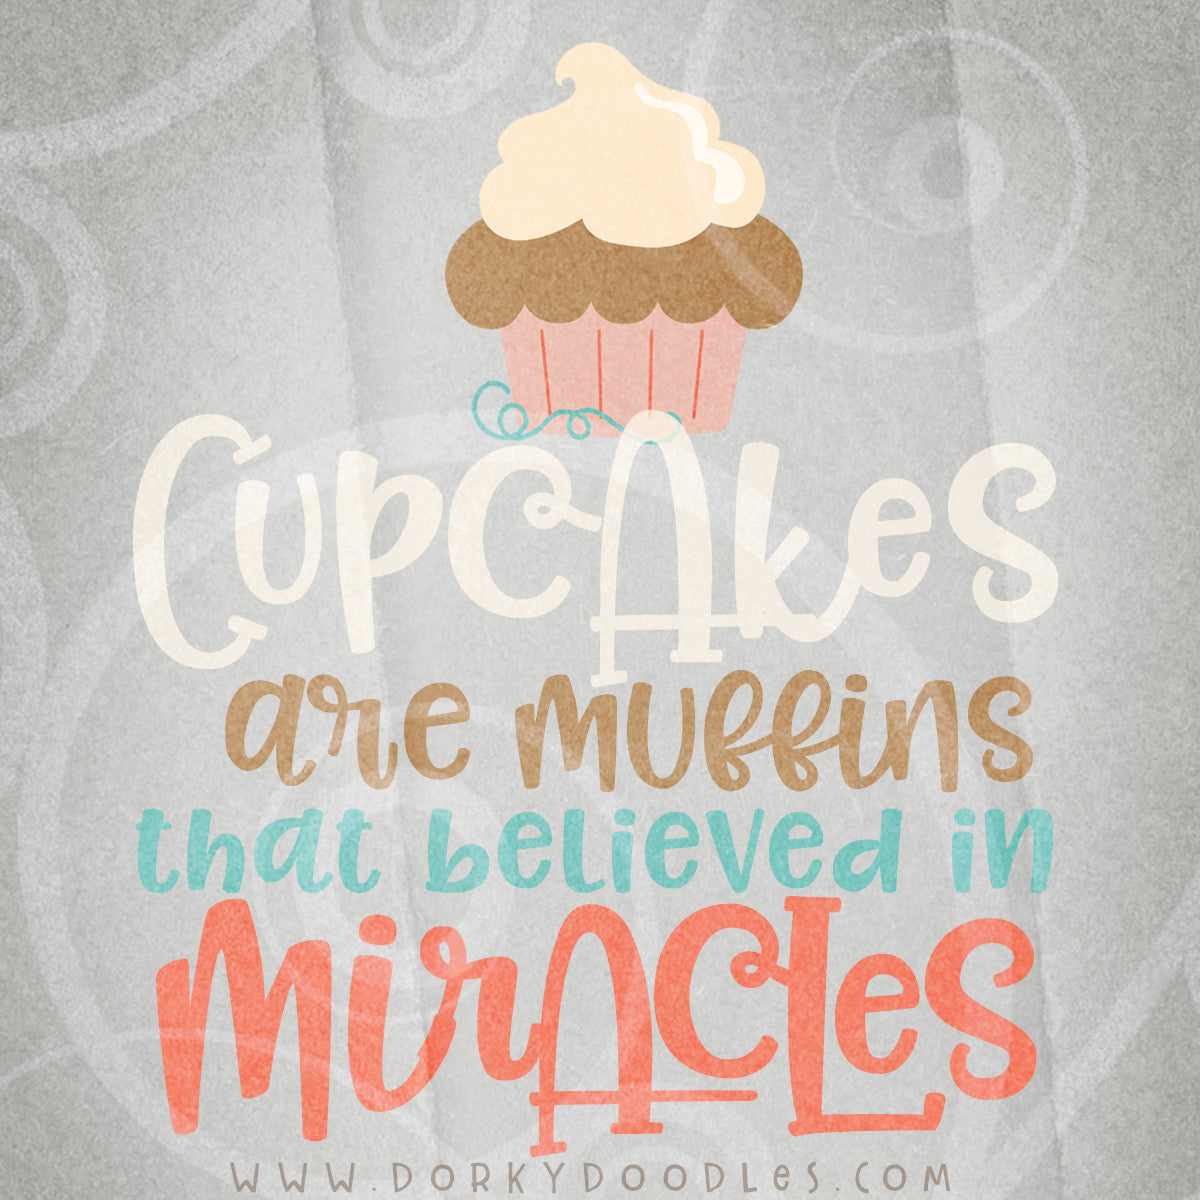 cupcakes are muffins that believe in miracles